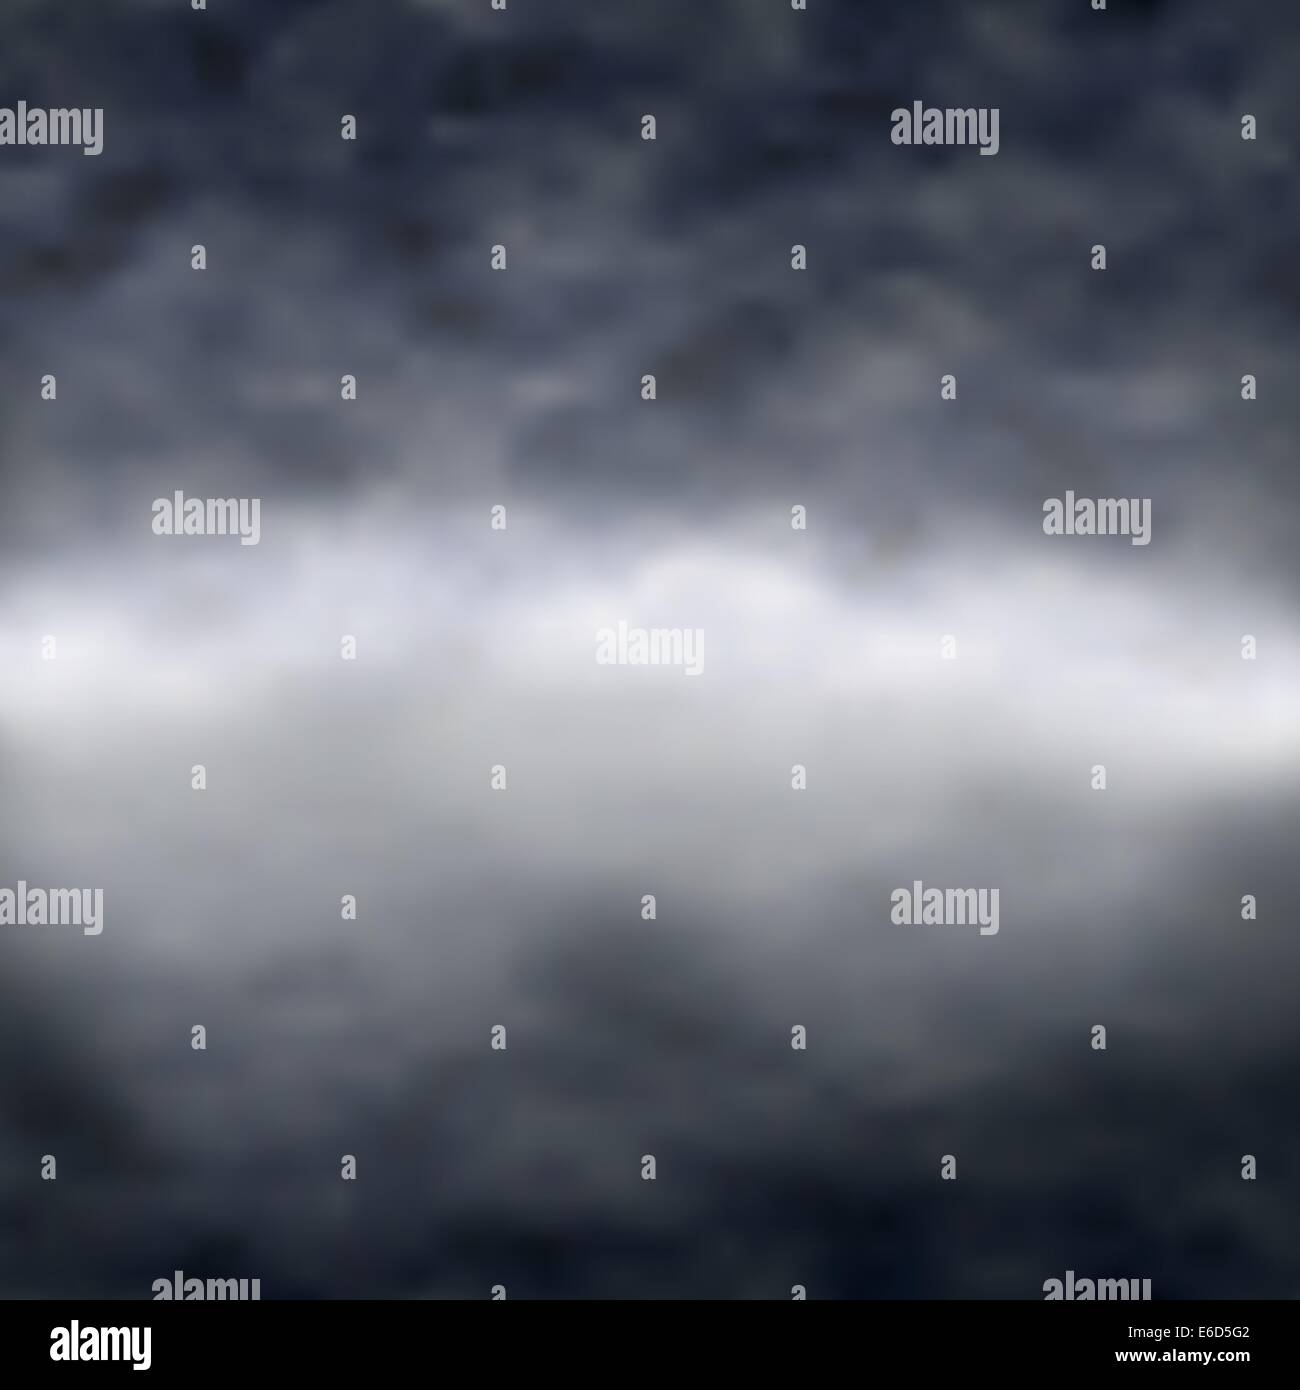 Editable vector illustration of clouds over a misty lake with reflection; made using a gradient mesh - Stock Vector